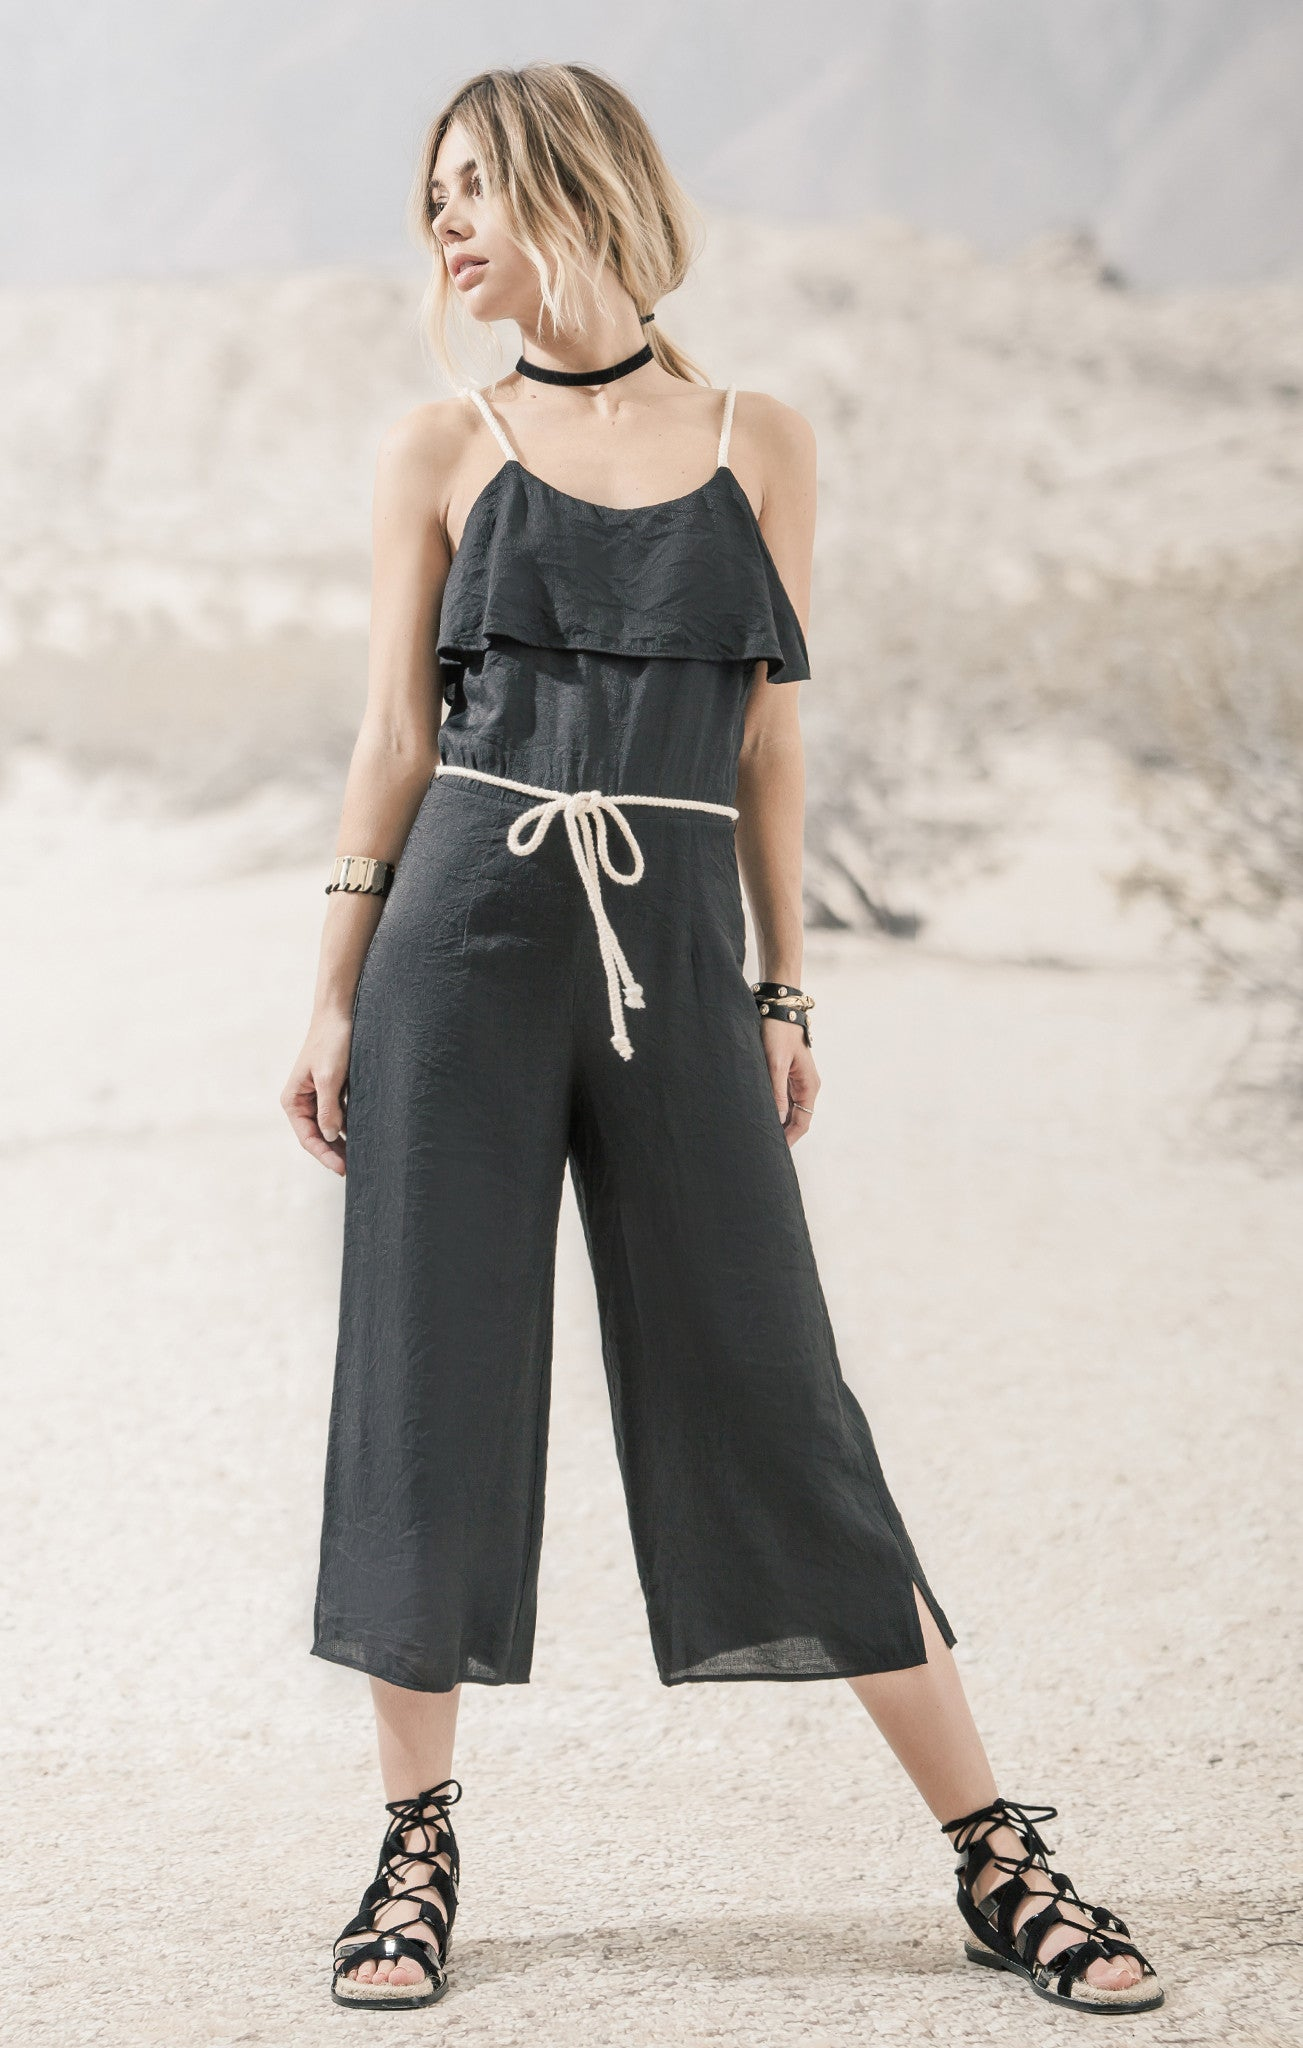 STRAPPY ROMPER WITH ROPE BELT